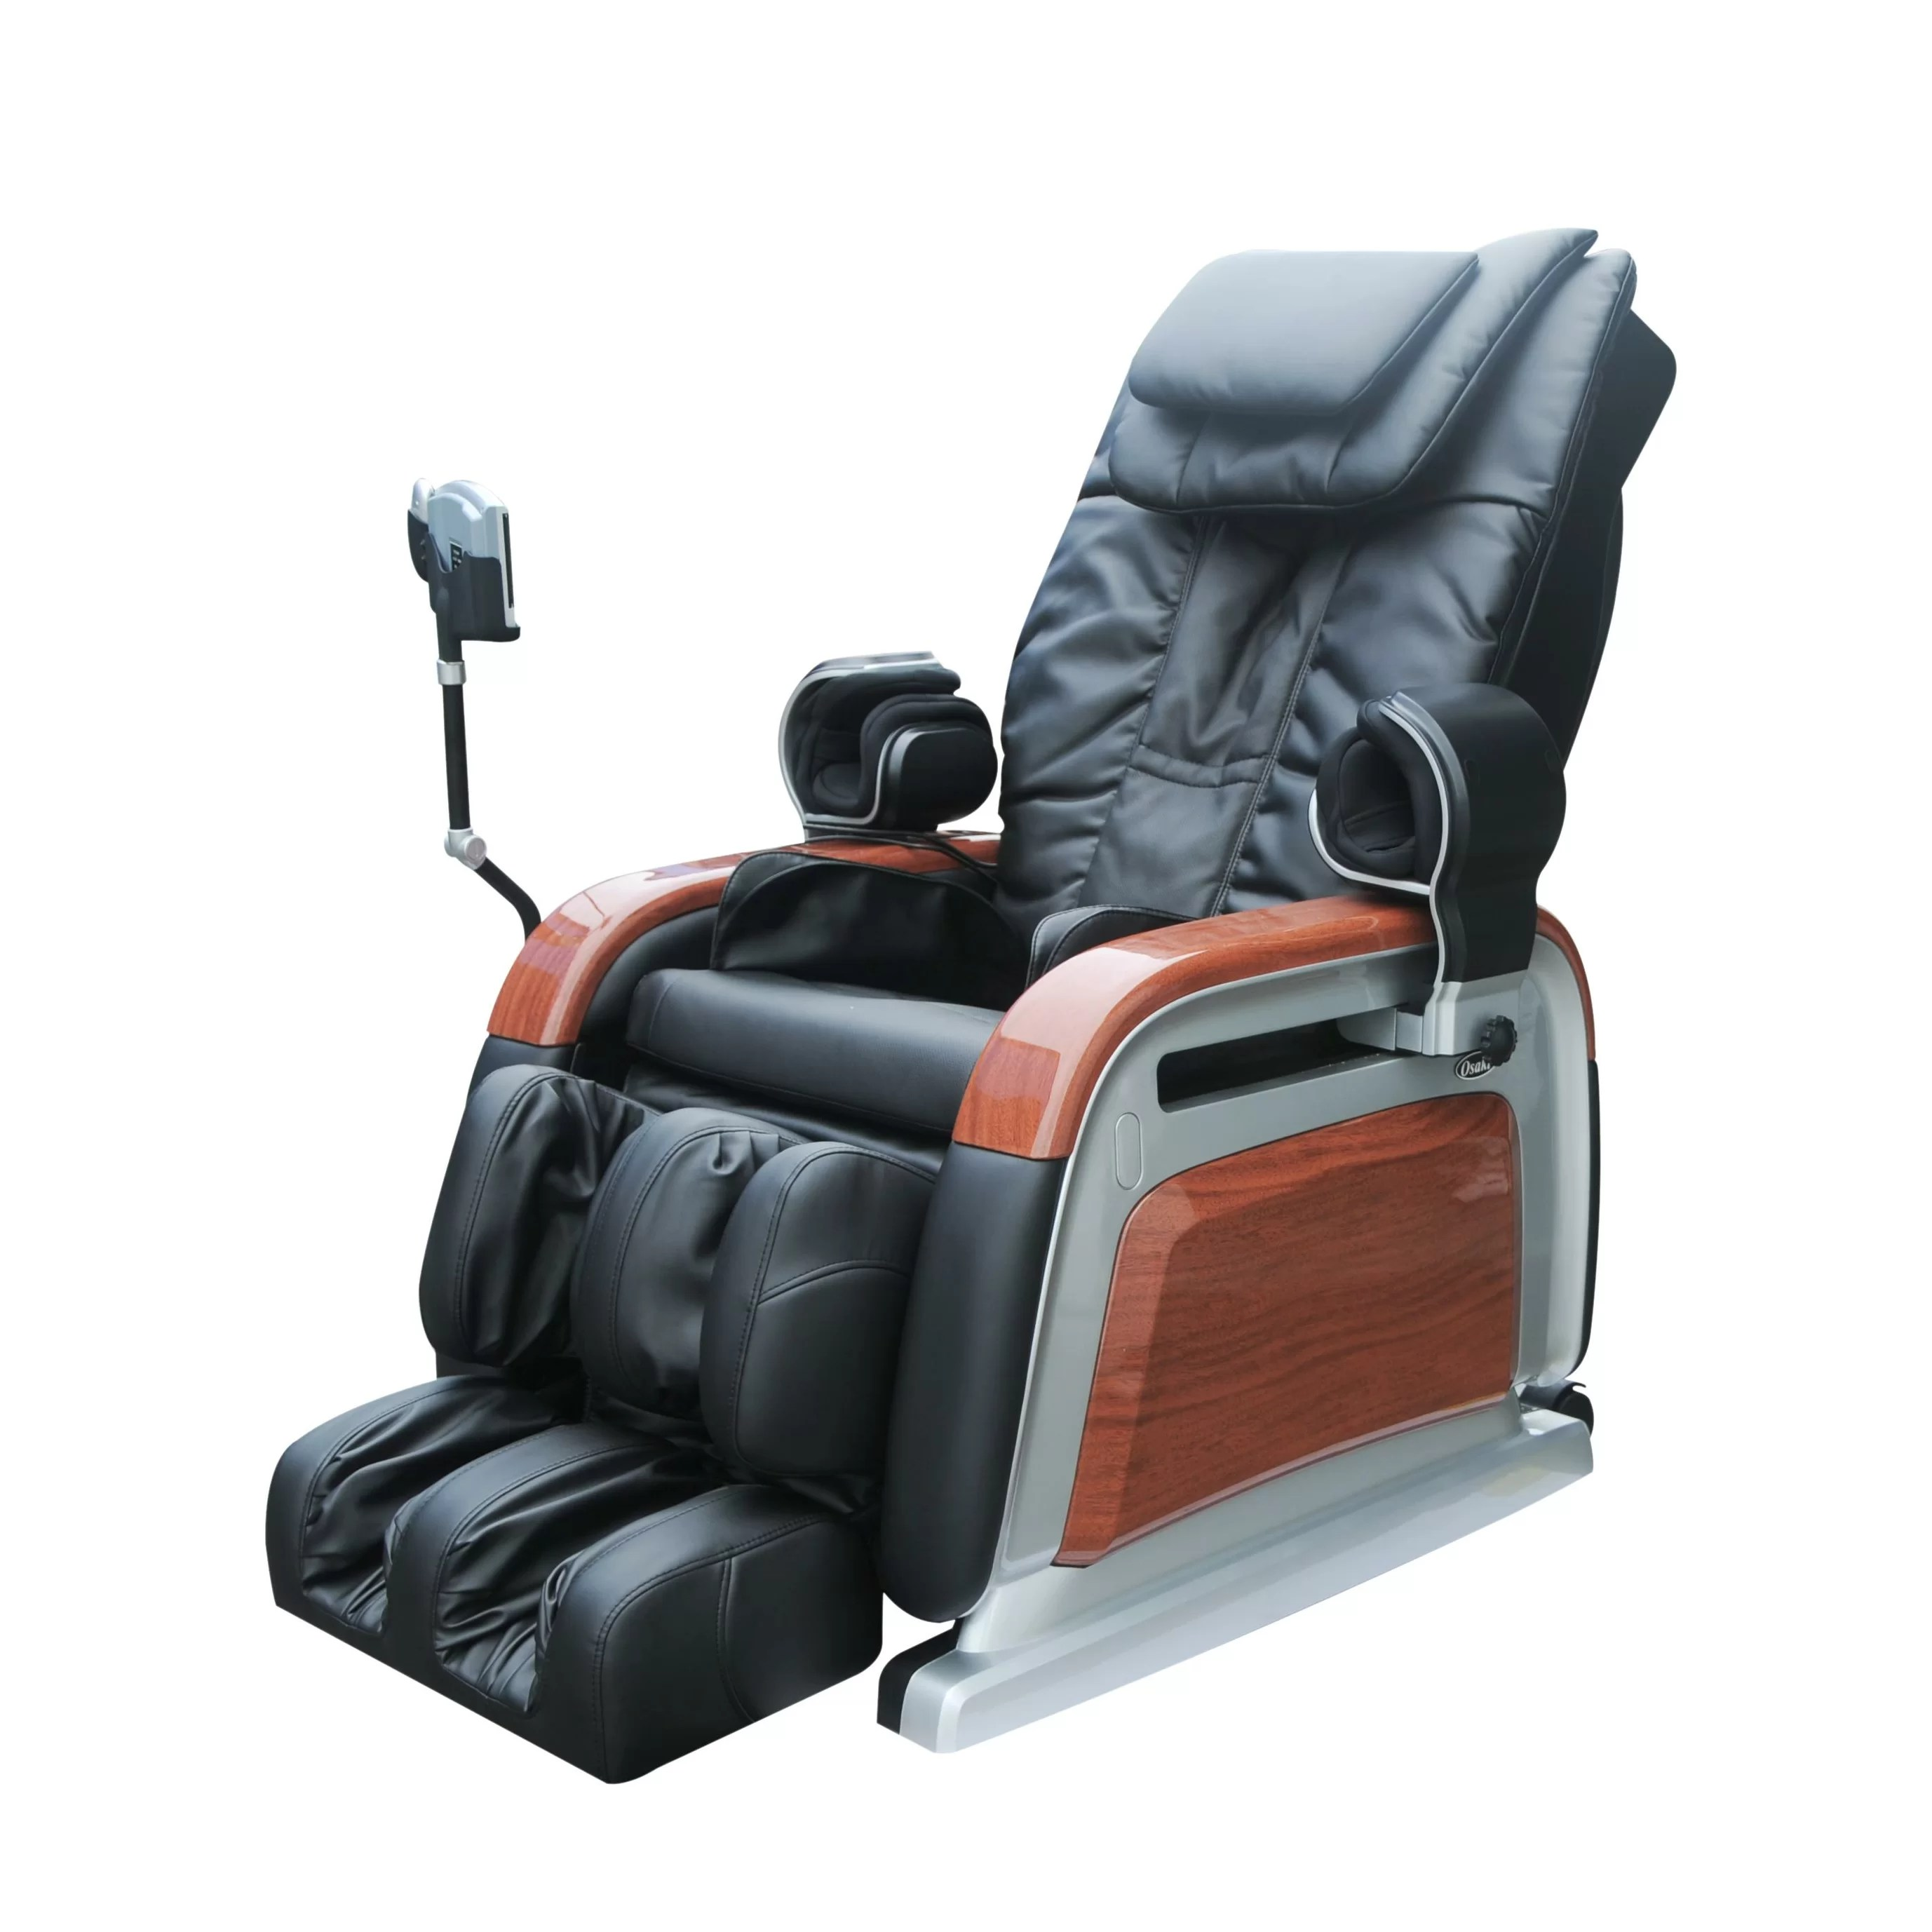 Osaki Massage Chairs Osaki Os 2000 Heated Reclining Massage Chair And Reviews